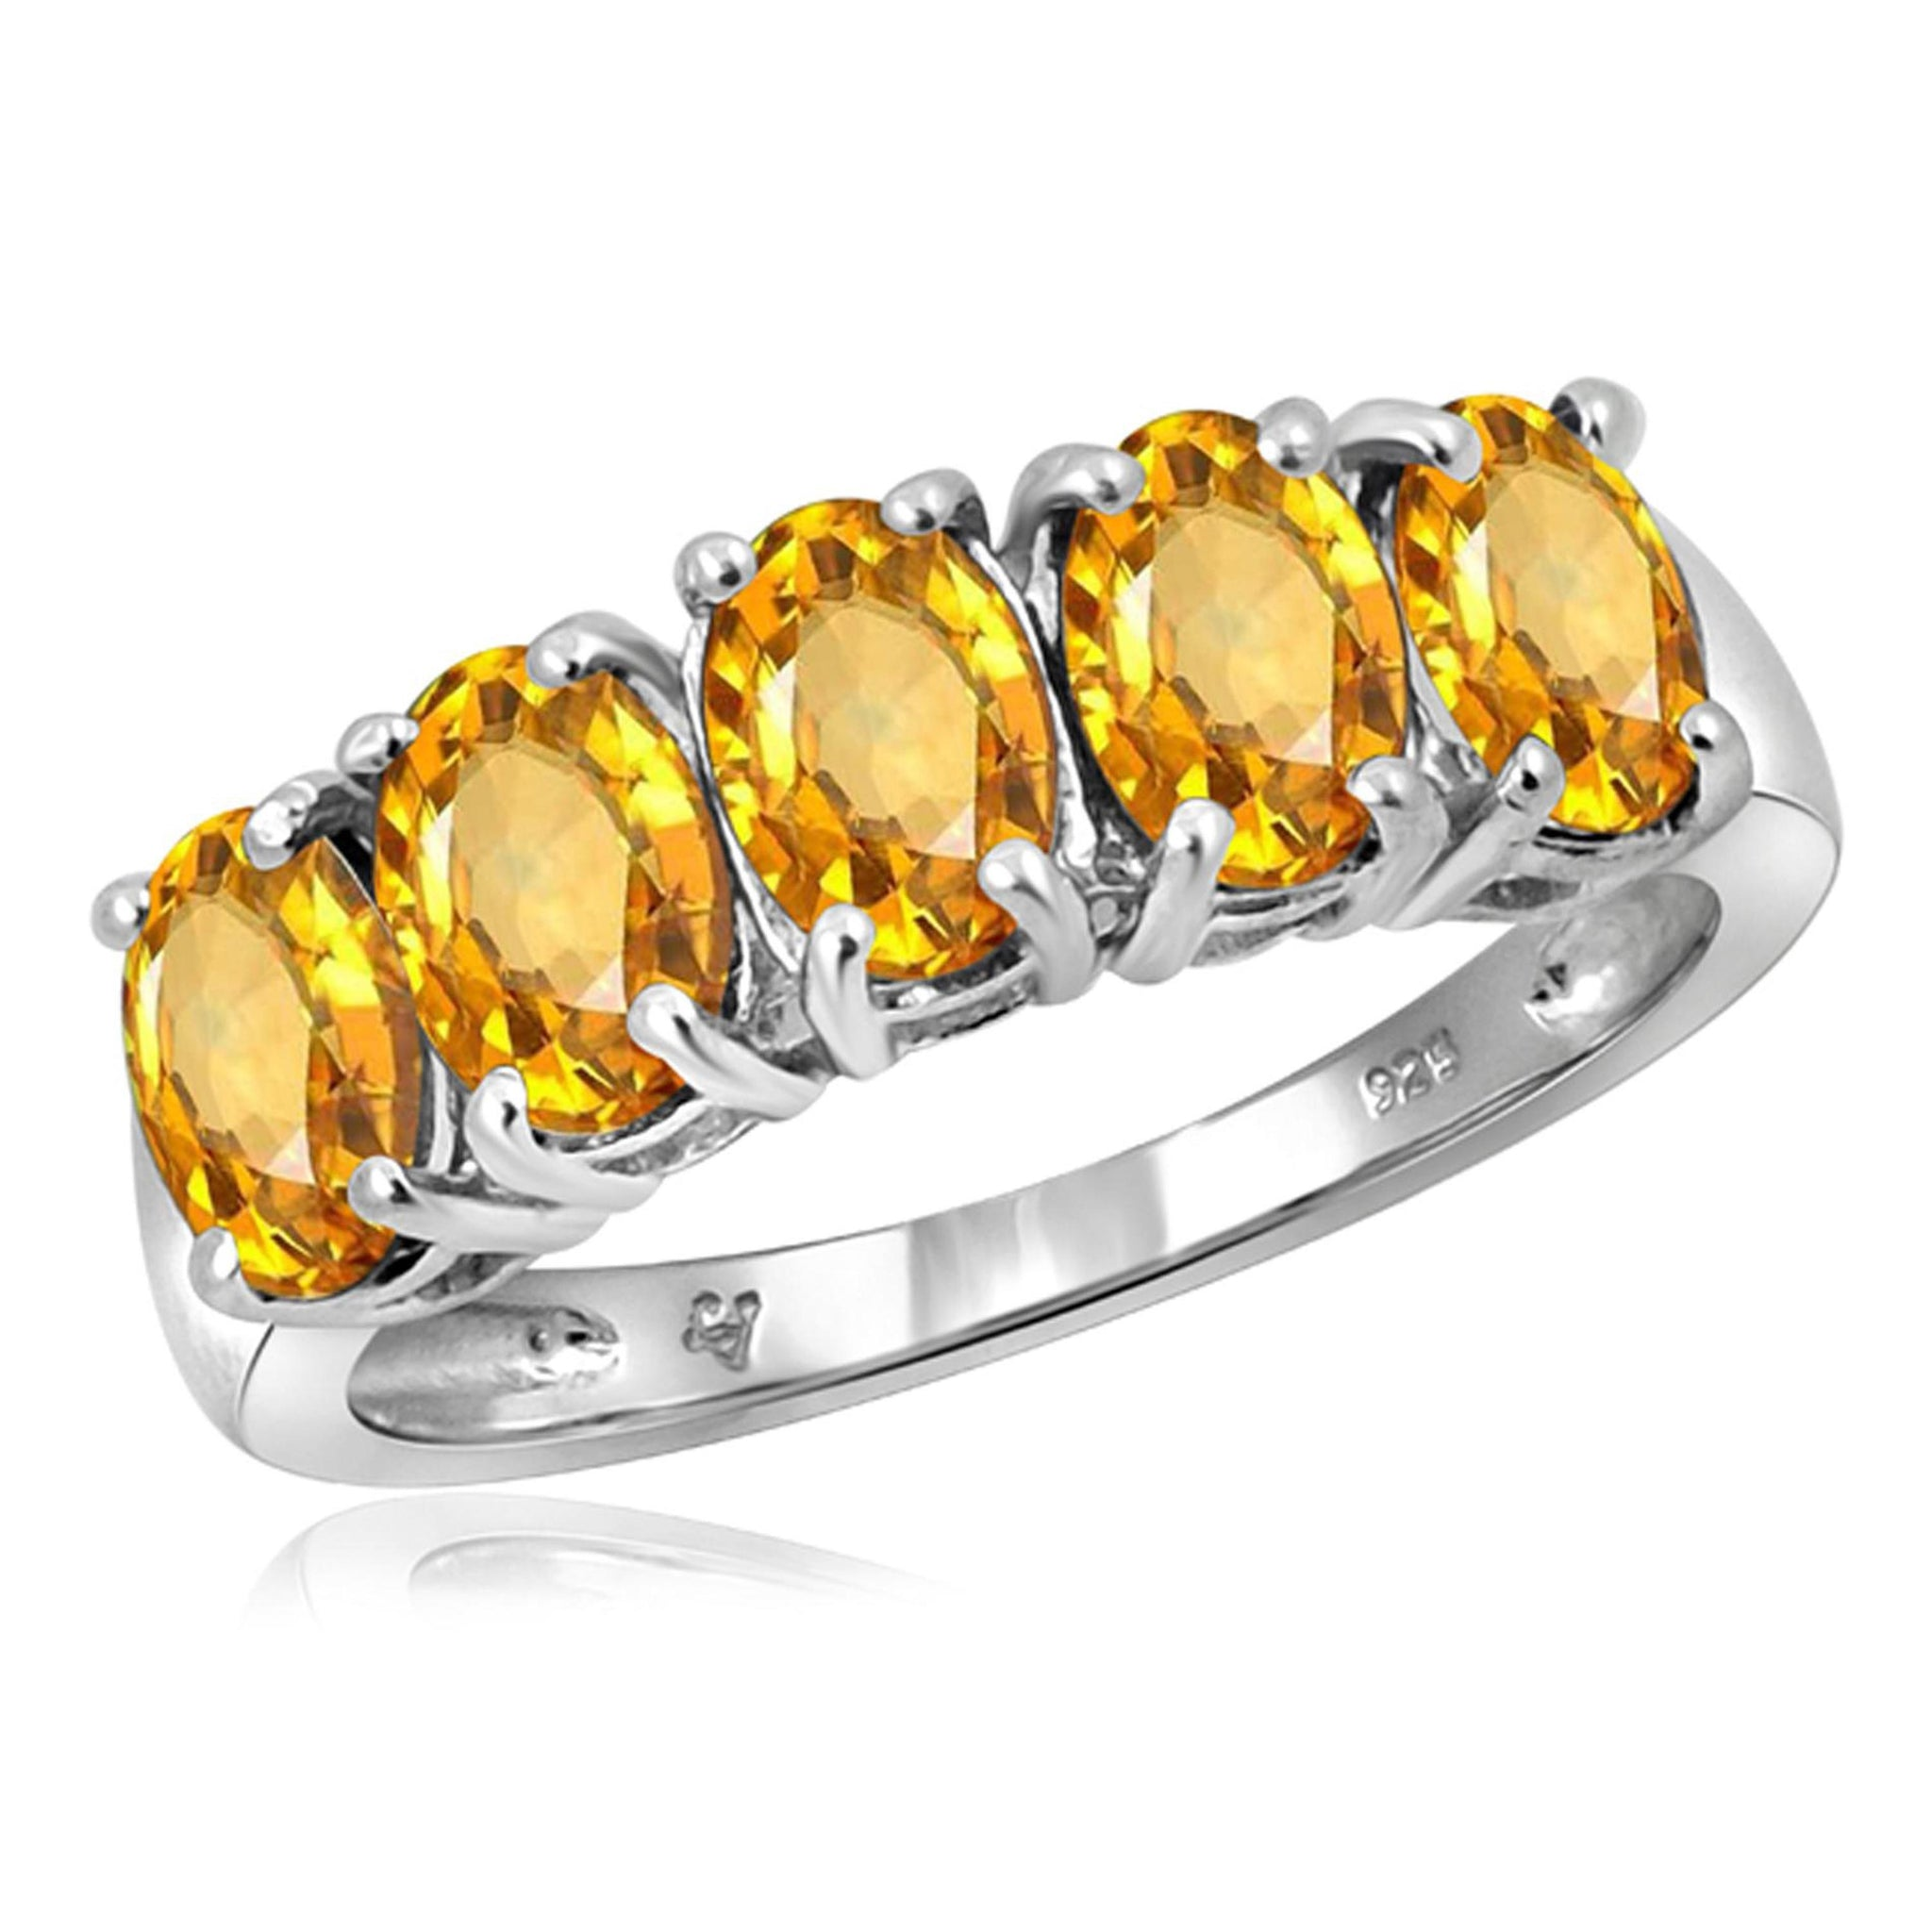 JewelonFire 2 1/3 Carat T.G.W. Citrine Sterling Silver Ring - Assorted Colors